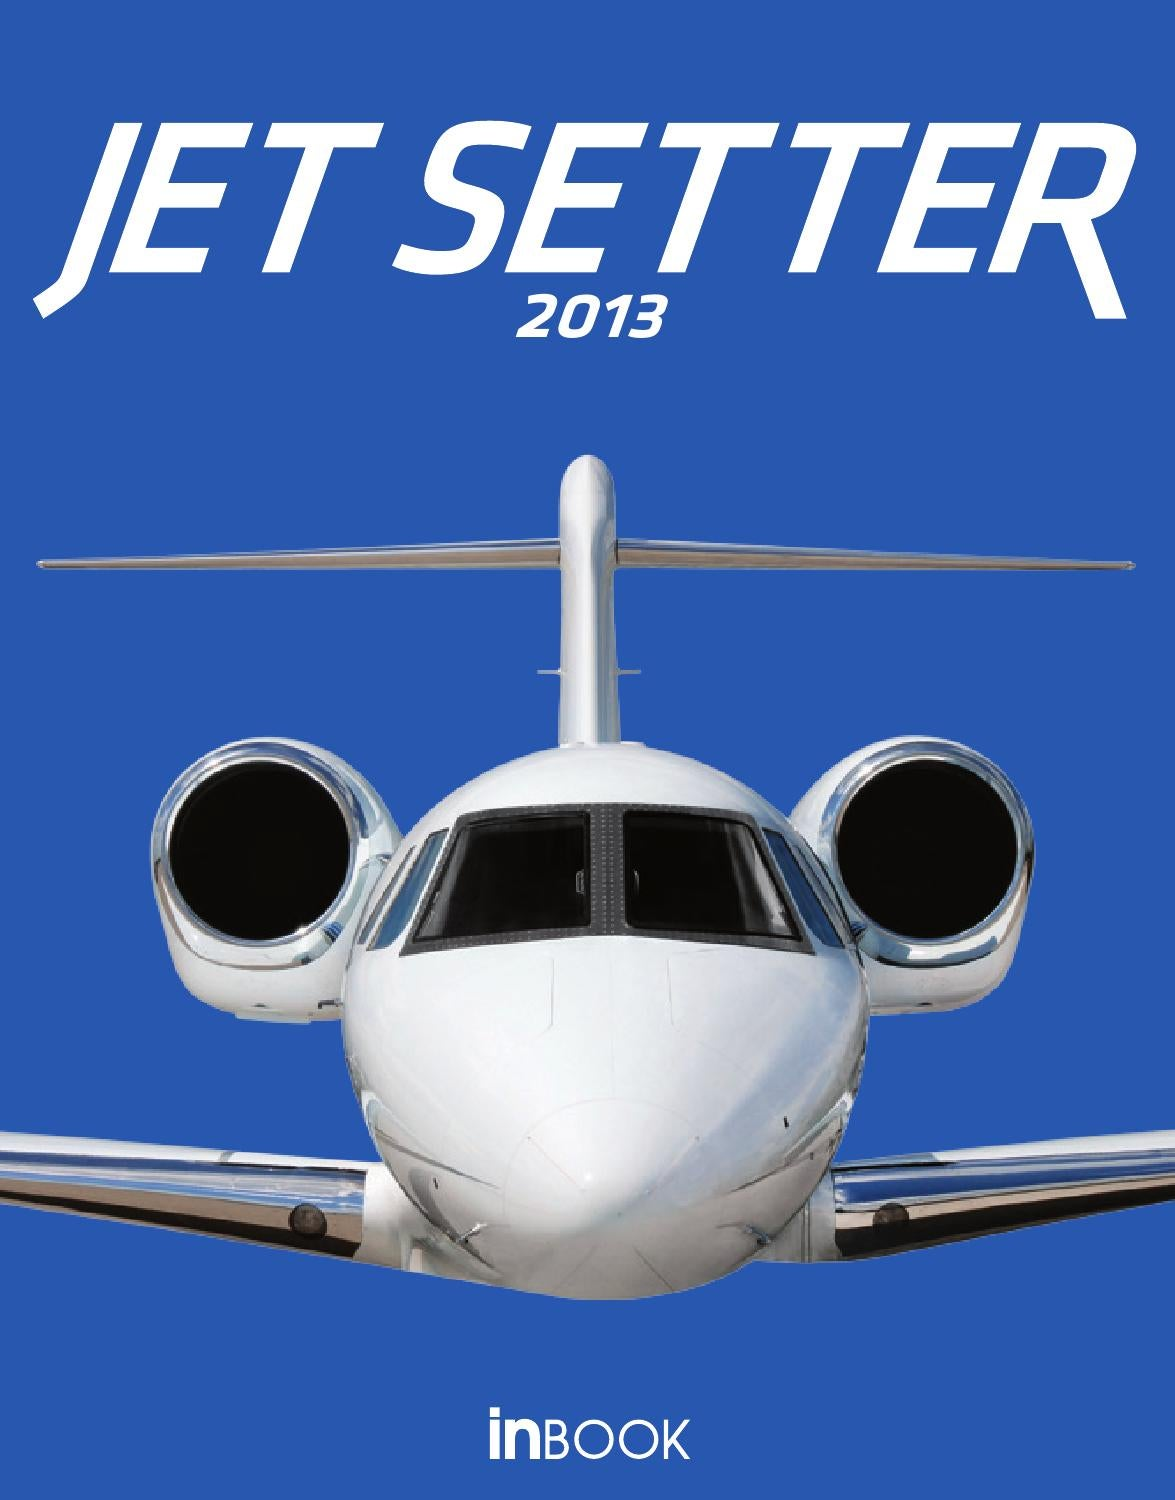 Jetsetter2013 issuu by inbook issuu fandeluxe Images